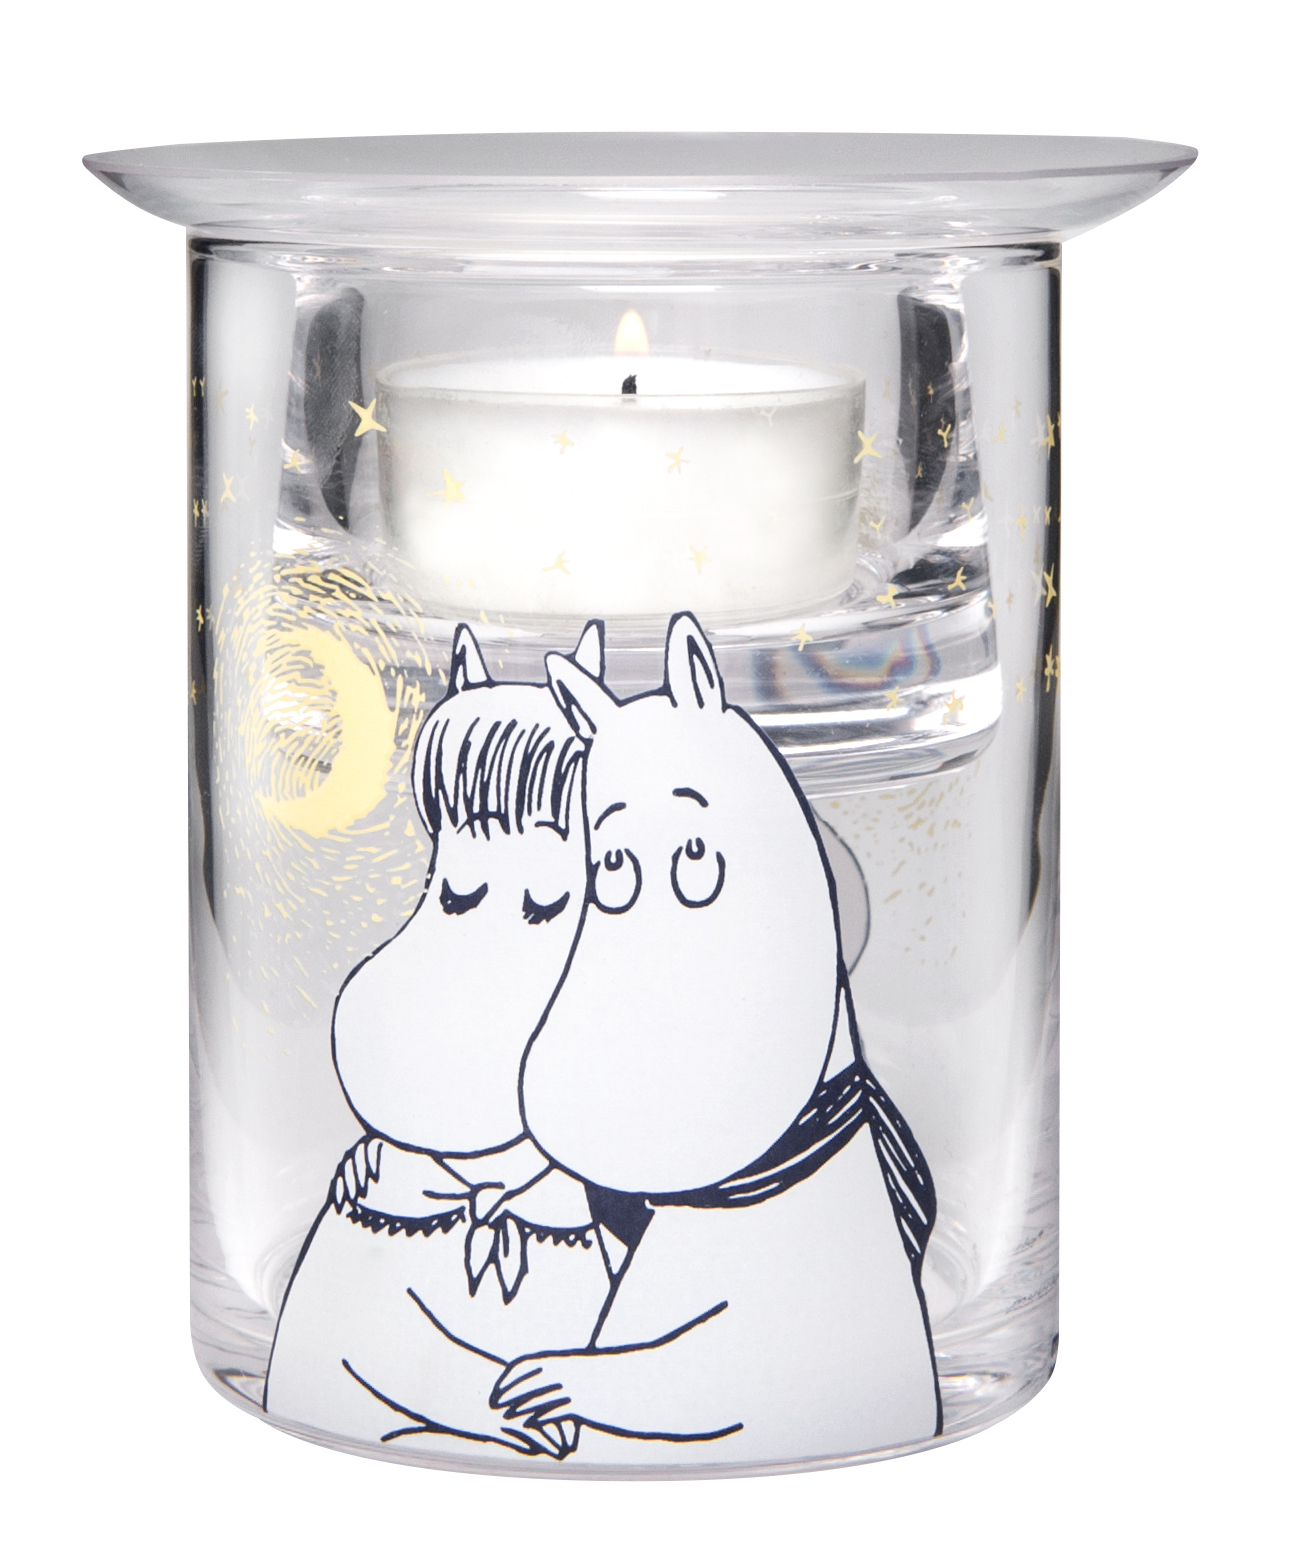 Muurla Winter romance tealight holder